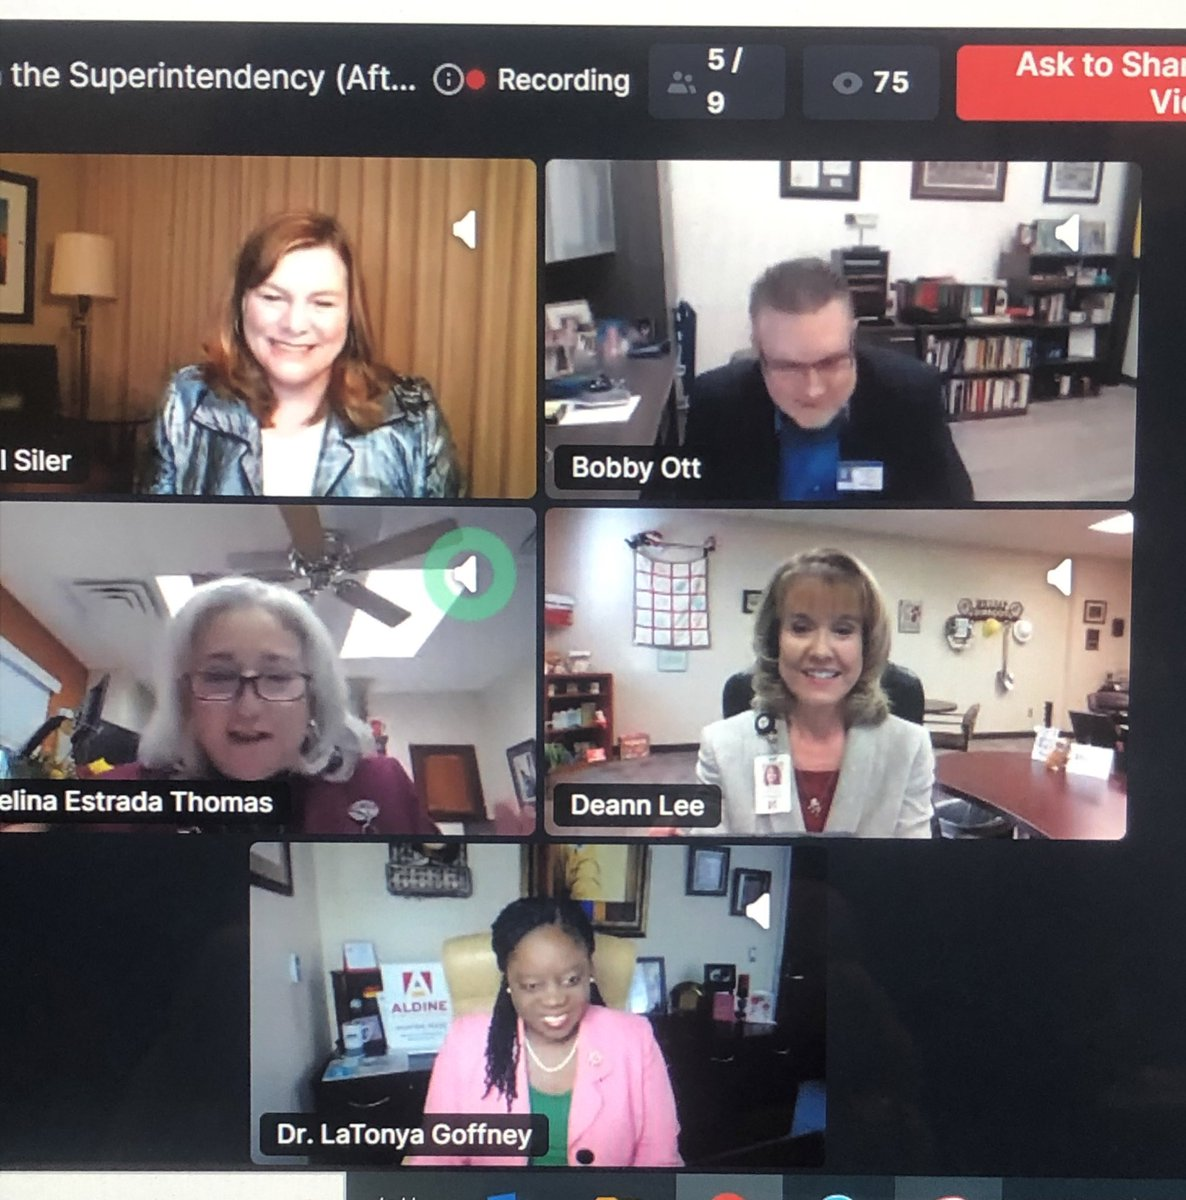 Thank you, @tasanet and Dr. @jillmsiler for the opportunity to share the virtual stage with amazing Texas superintendents and hopefully inspire and encourage future superintendents. #InspiringLeaders #LeadershipMatters